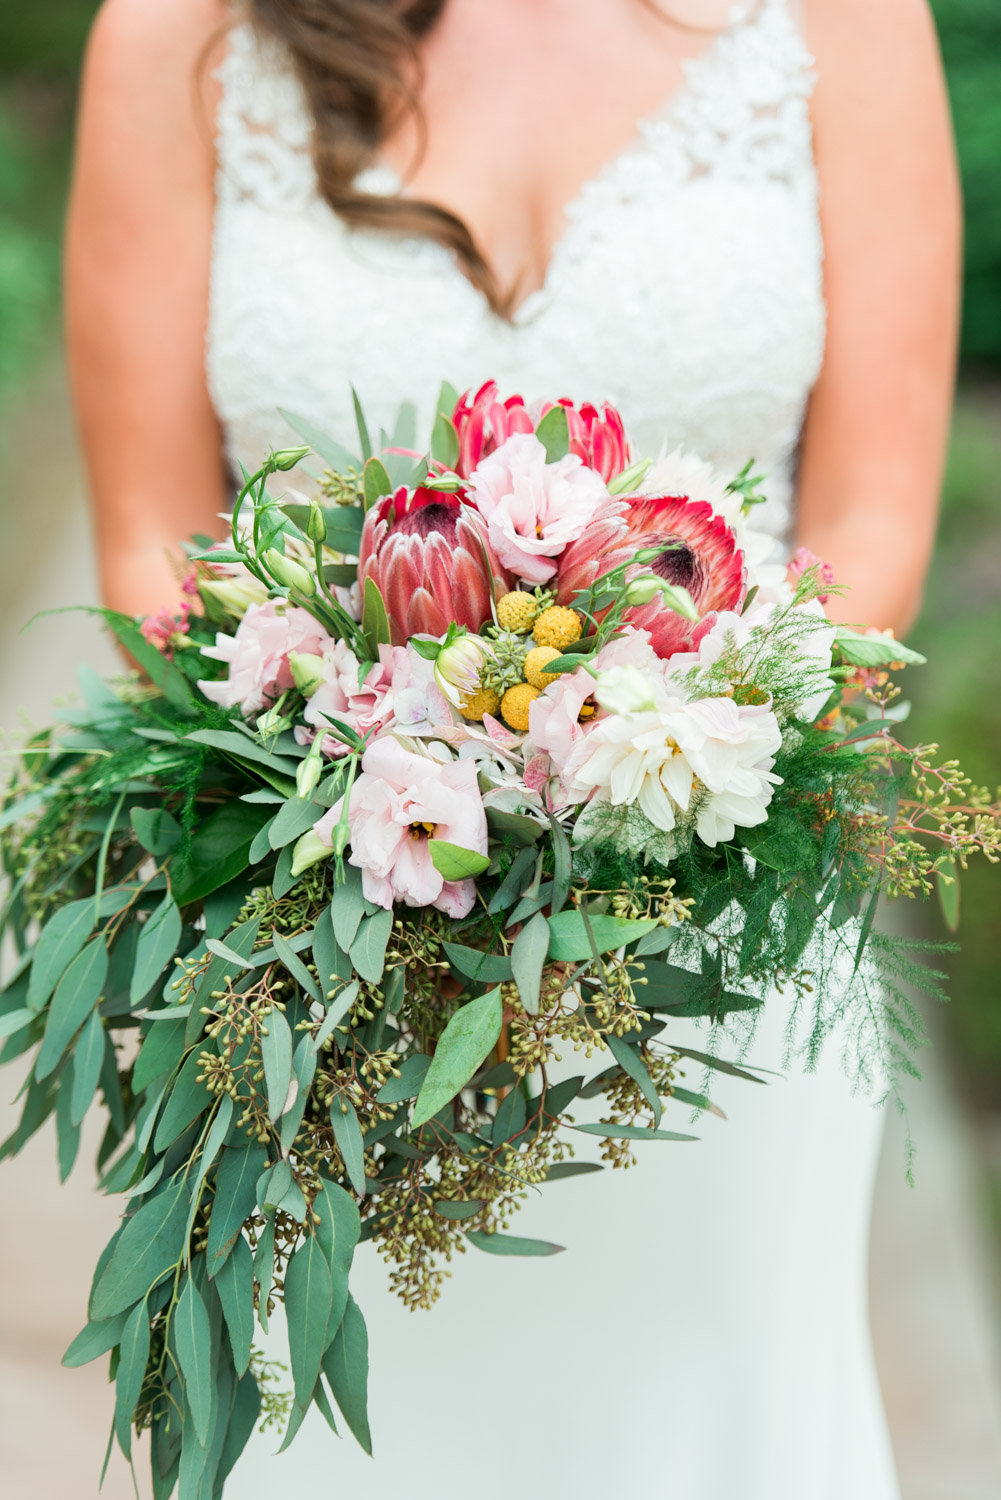 African flower protea pink white and green large bridal bouquet at Desert Ridge Estate, Cavin Elizabeth Photography